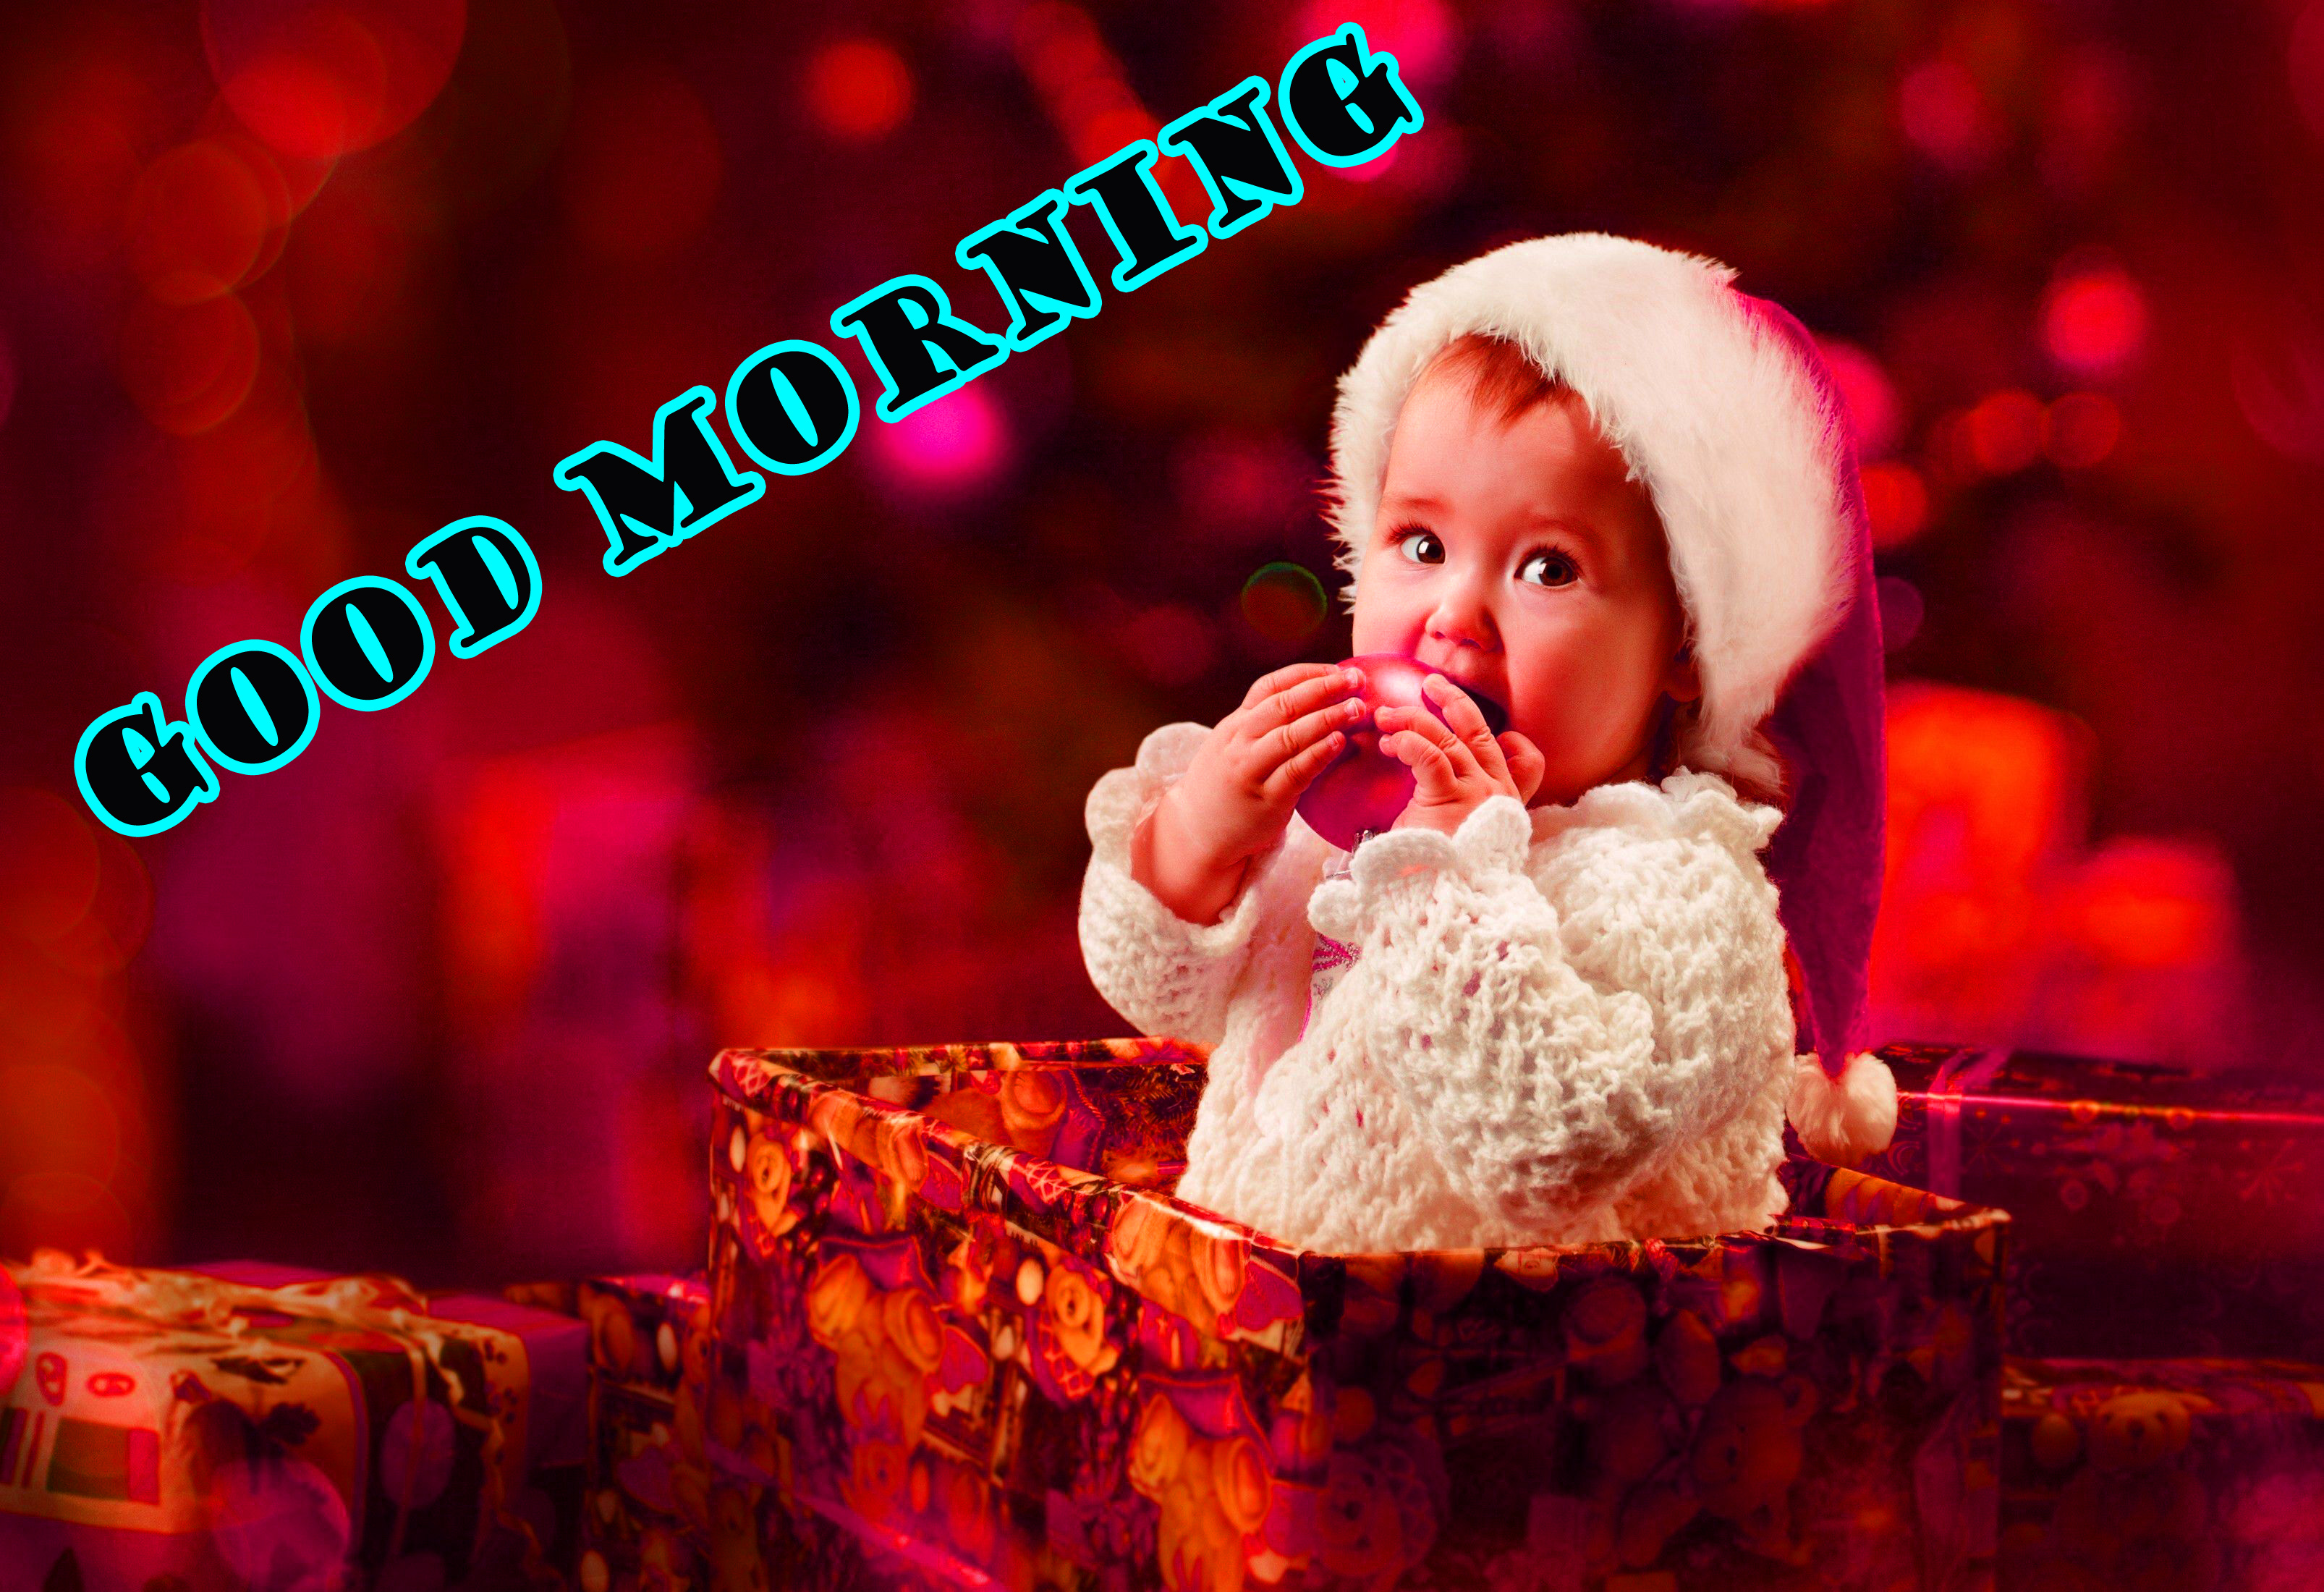 Special Wonderful Good Morning Photo Pictures For Facebook